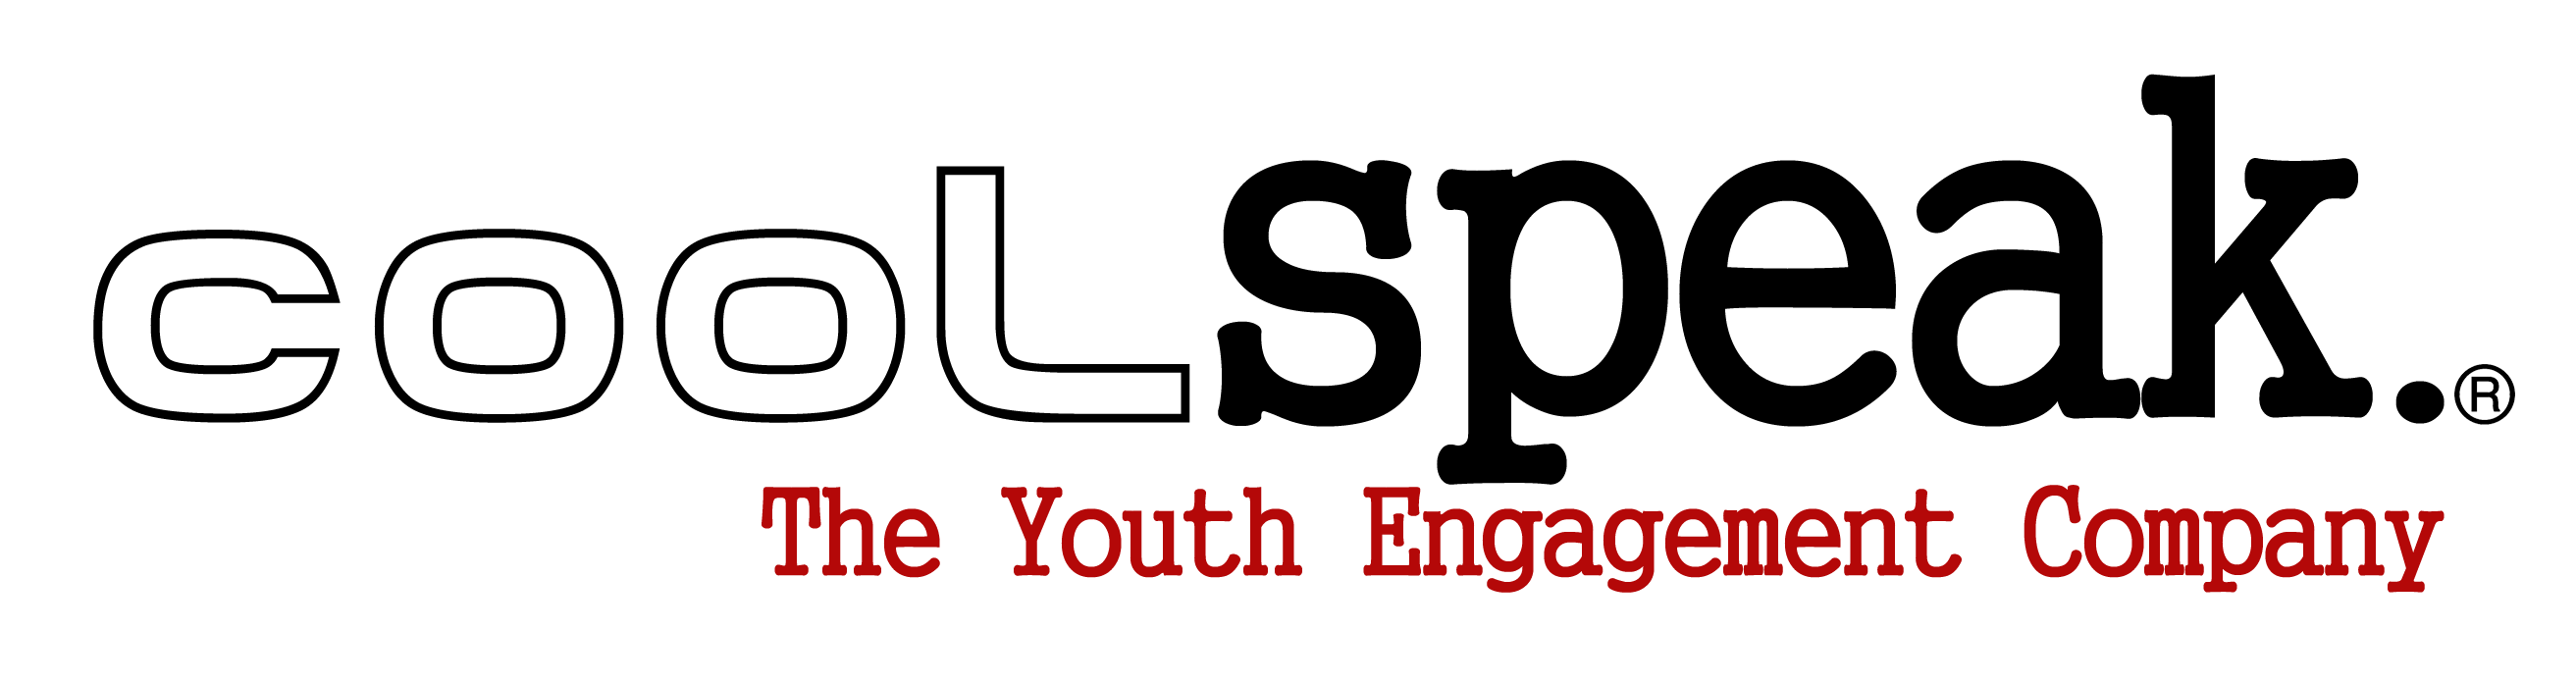 CoolSpeak. The Youth Engagement Company